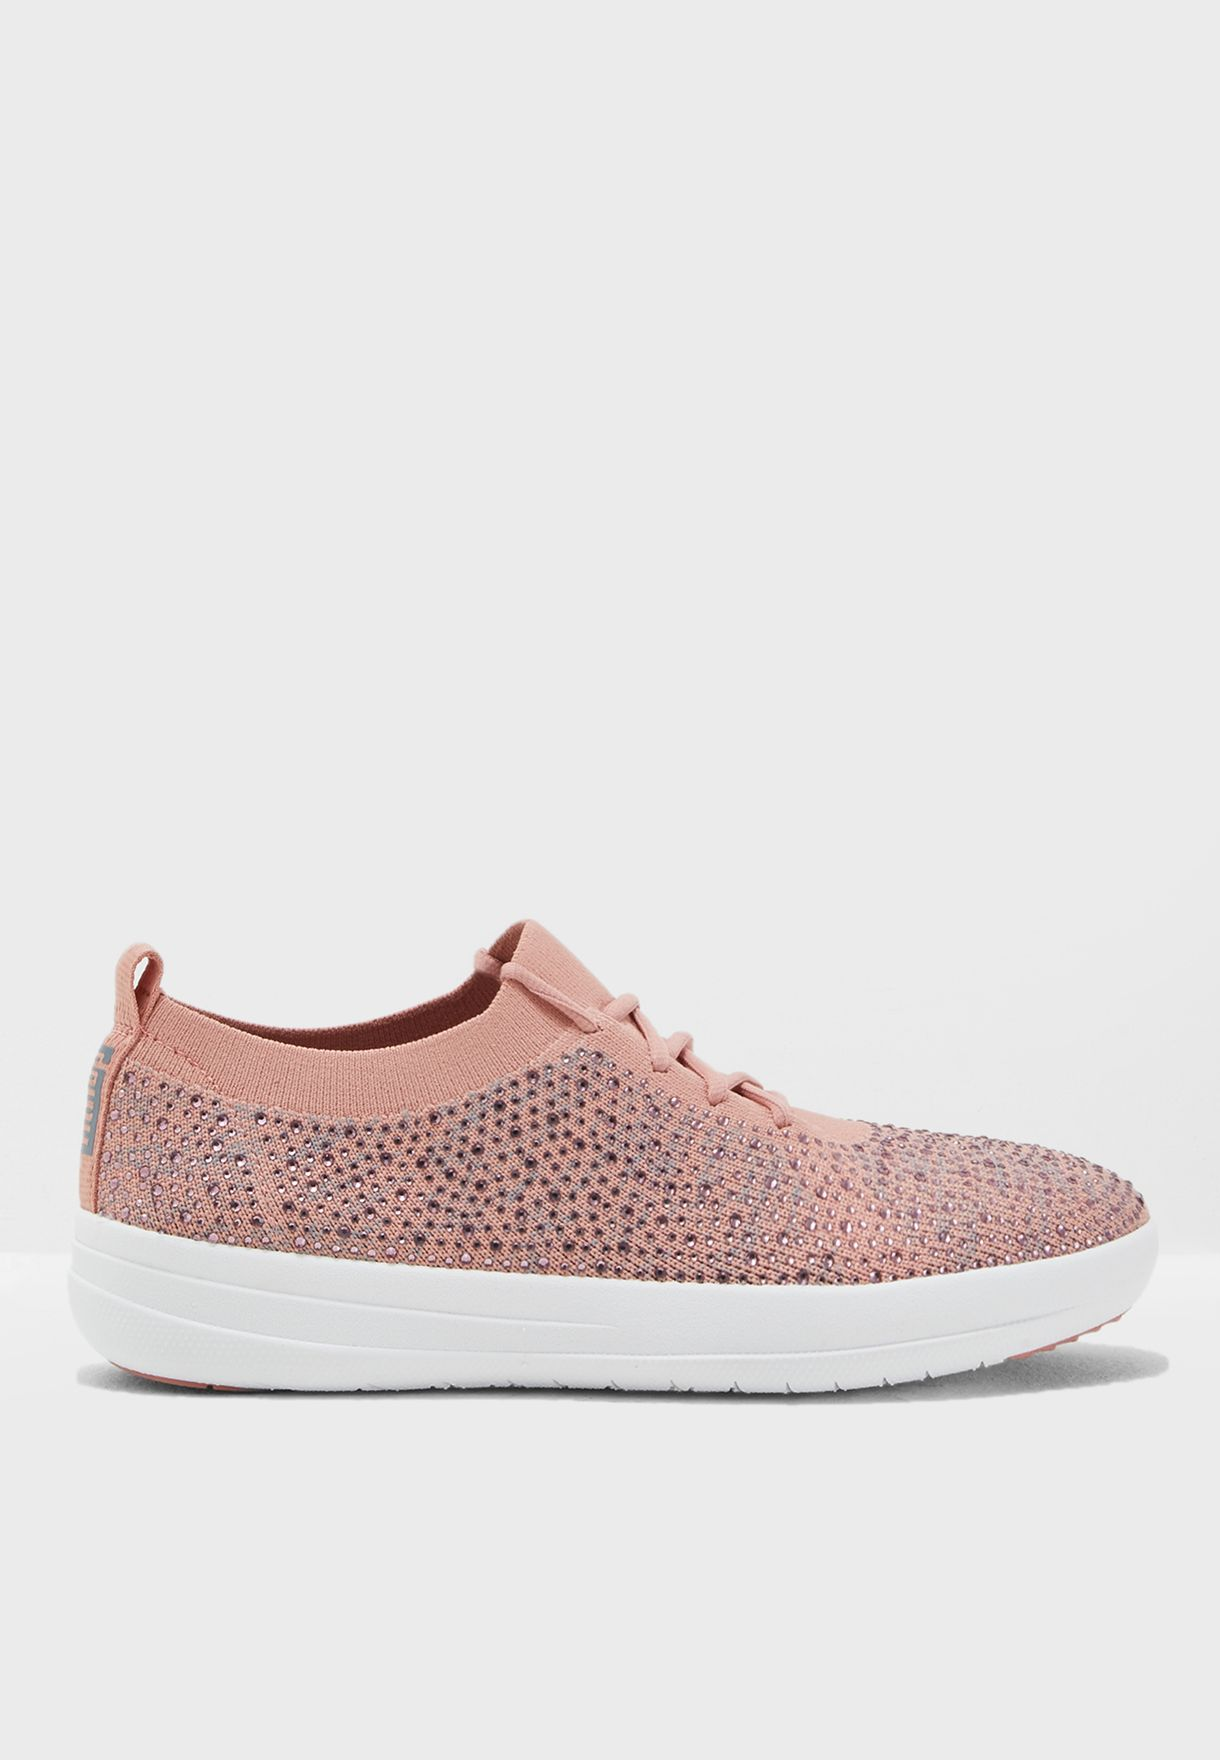 056a14b82fbf Shop Fitflop pink F-Sporty Uberknit Crystal Sneakers M25-602 for ...